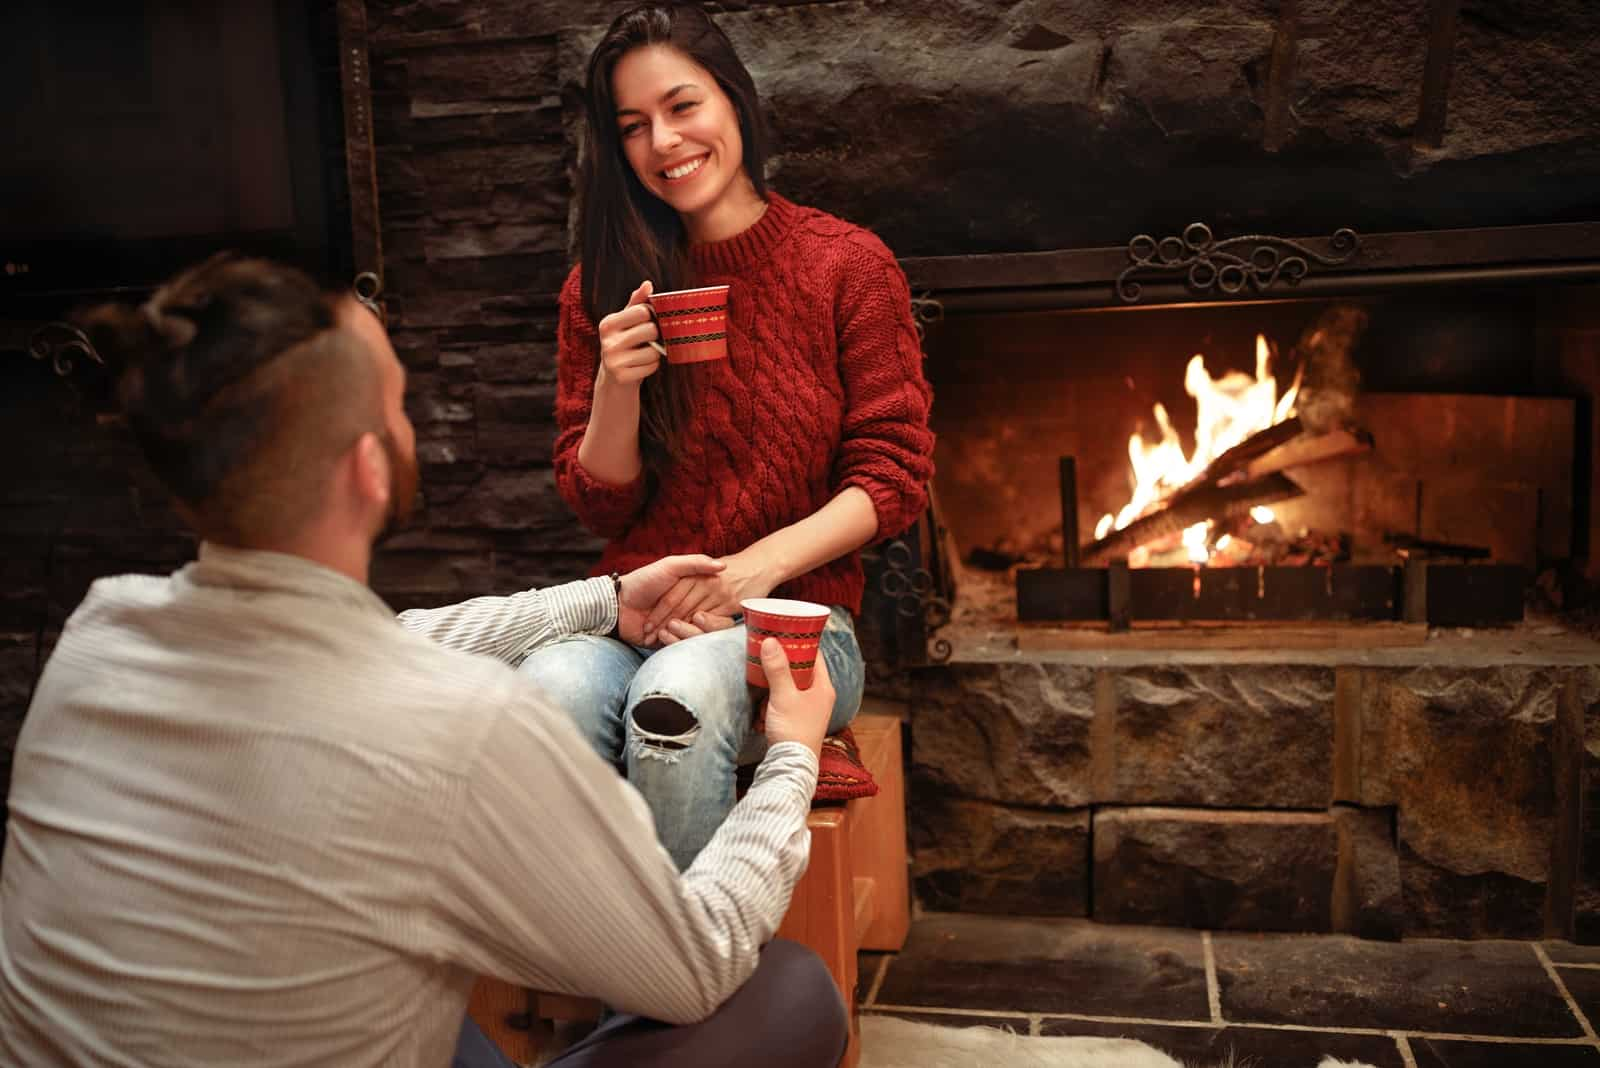 happy woman looking at man while sitting near fireplace